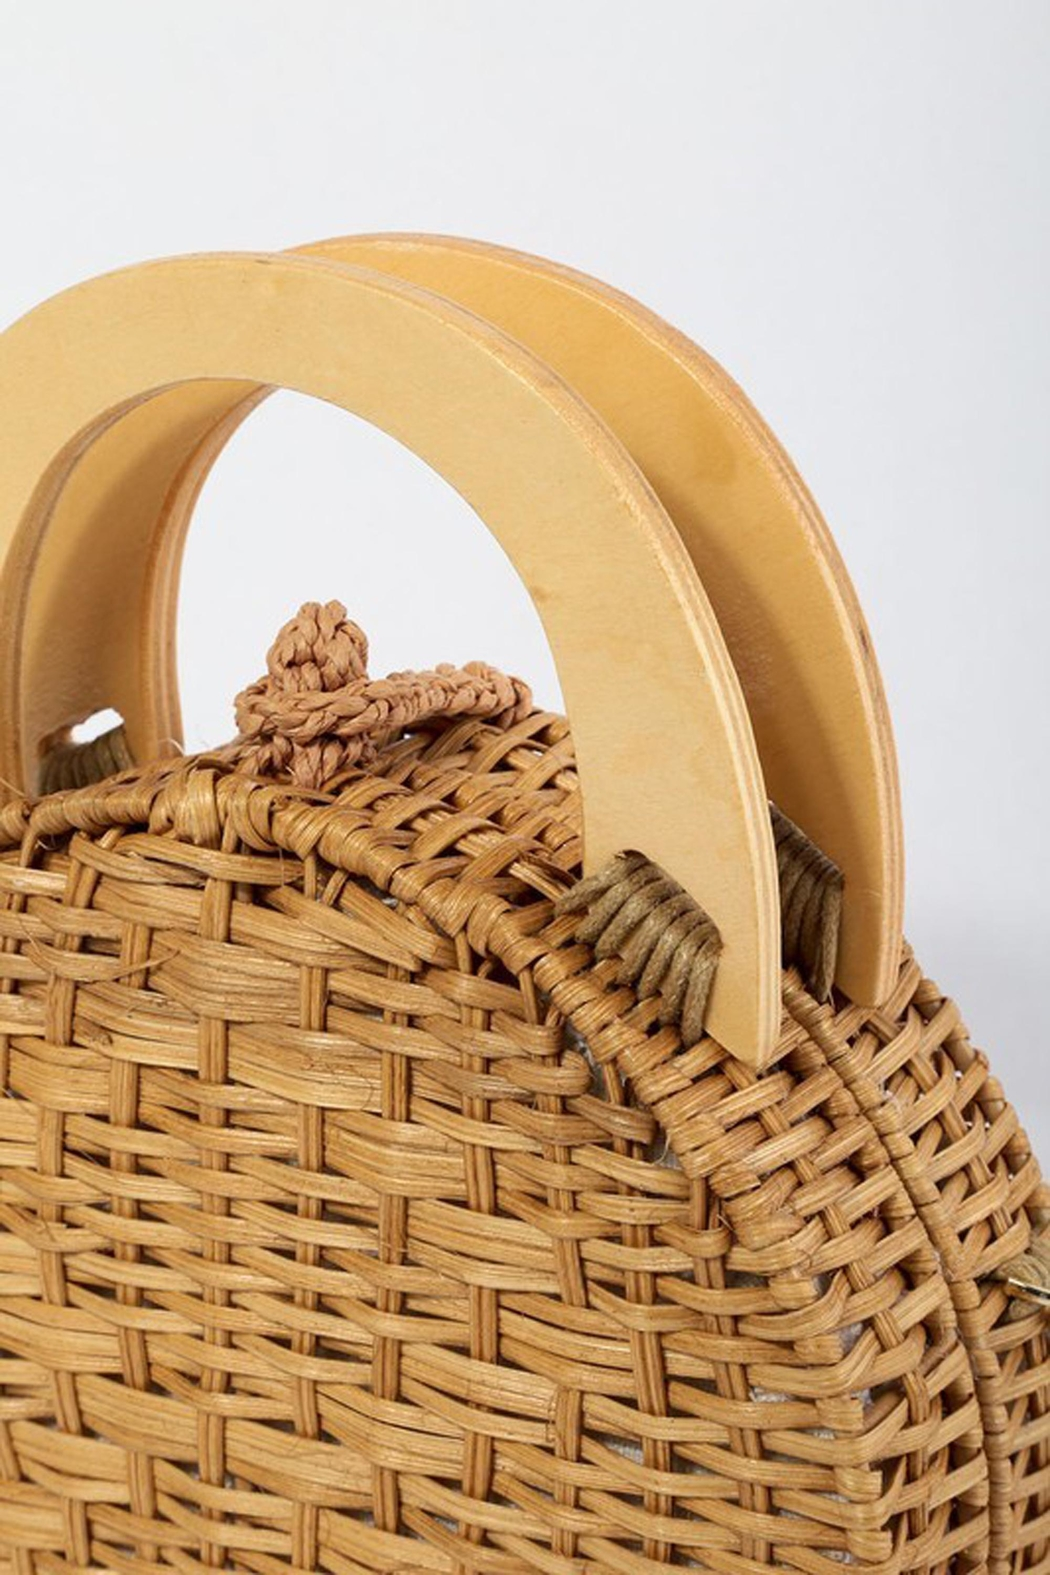 d81a3531cfc67 Style Trolley Round Rattan Purse from Minneapolis by StyleTrolley ...